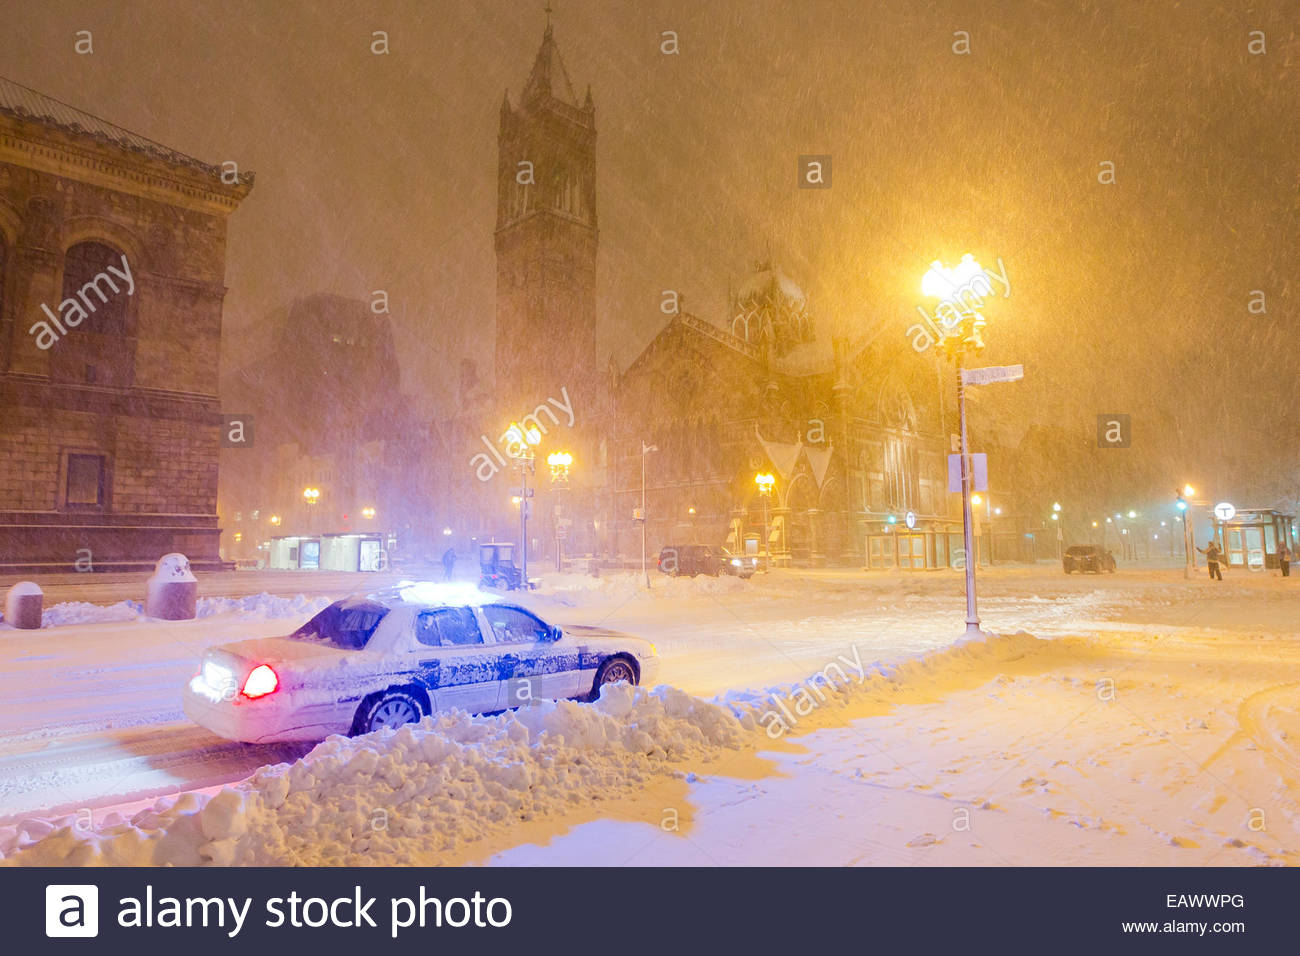 Streetlights illuminate heavy snowfall as a police car cruises city streets during the Blizzard of 2013. Stock Photo